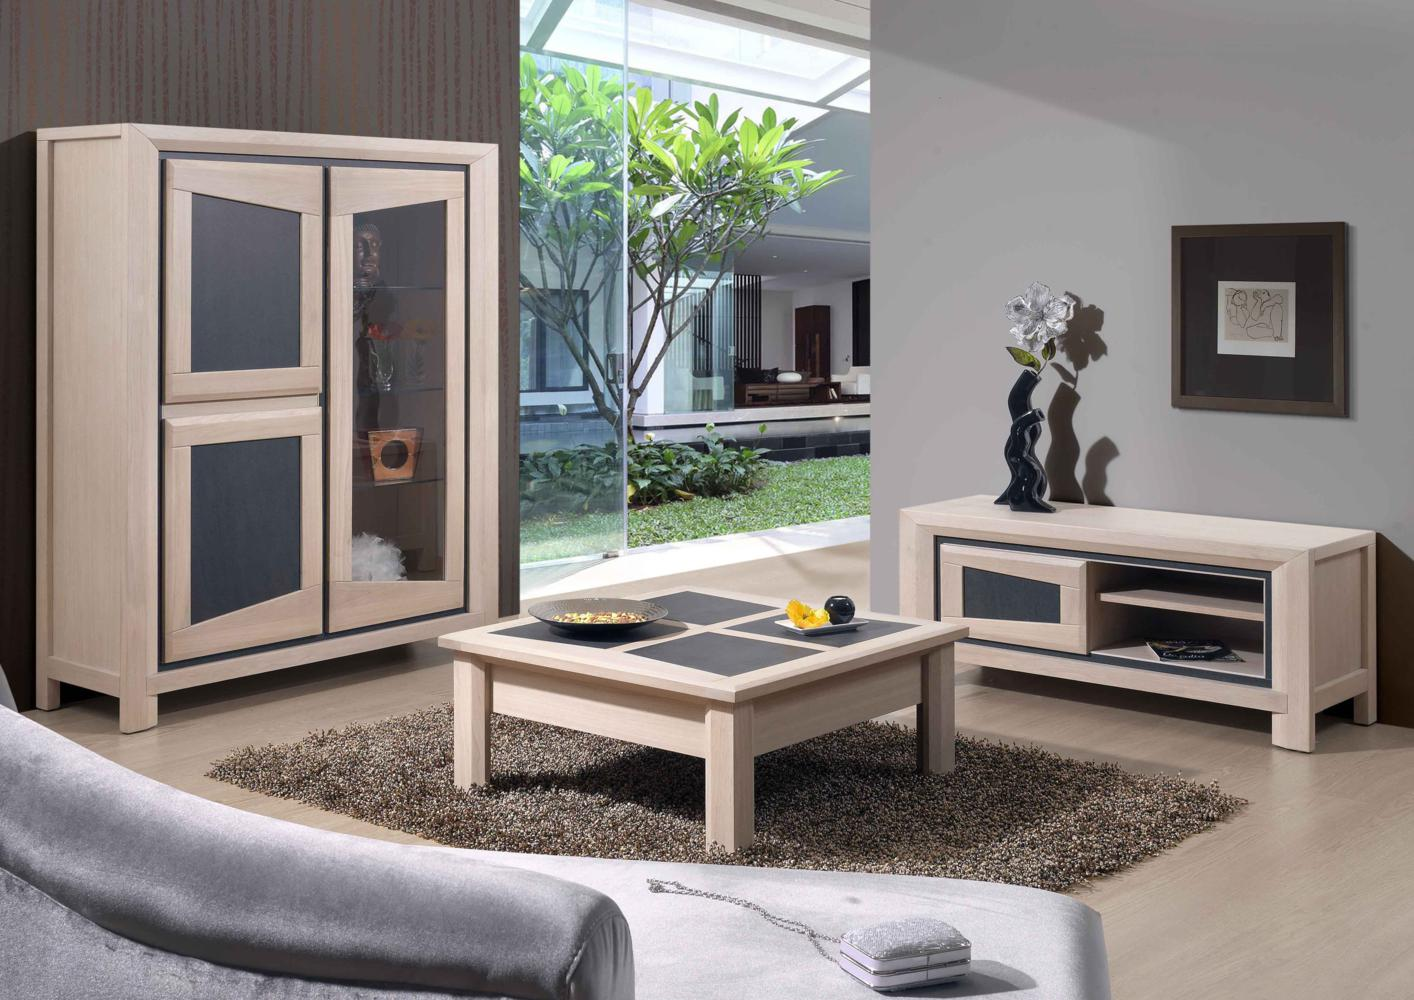 acheter votre meuble tv 1 porte chene massif et ceramique. Black Bedroom Furniture Sets. Home Design Ideas